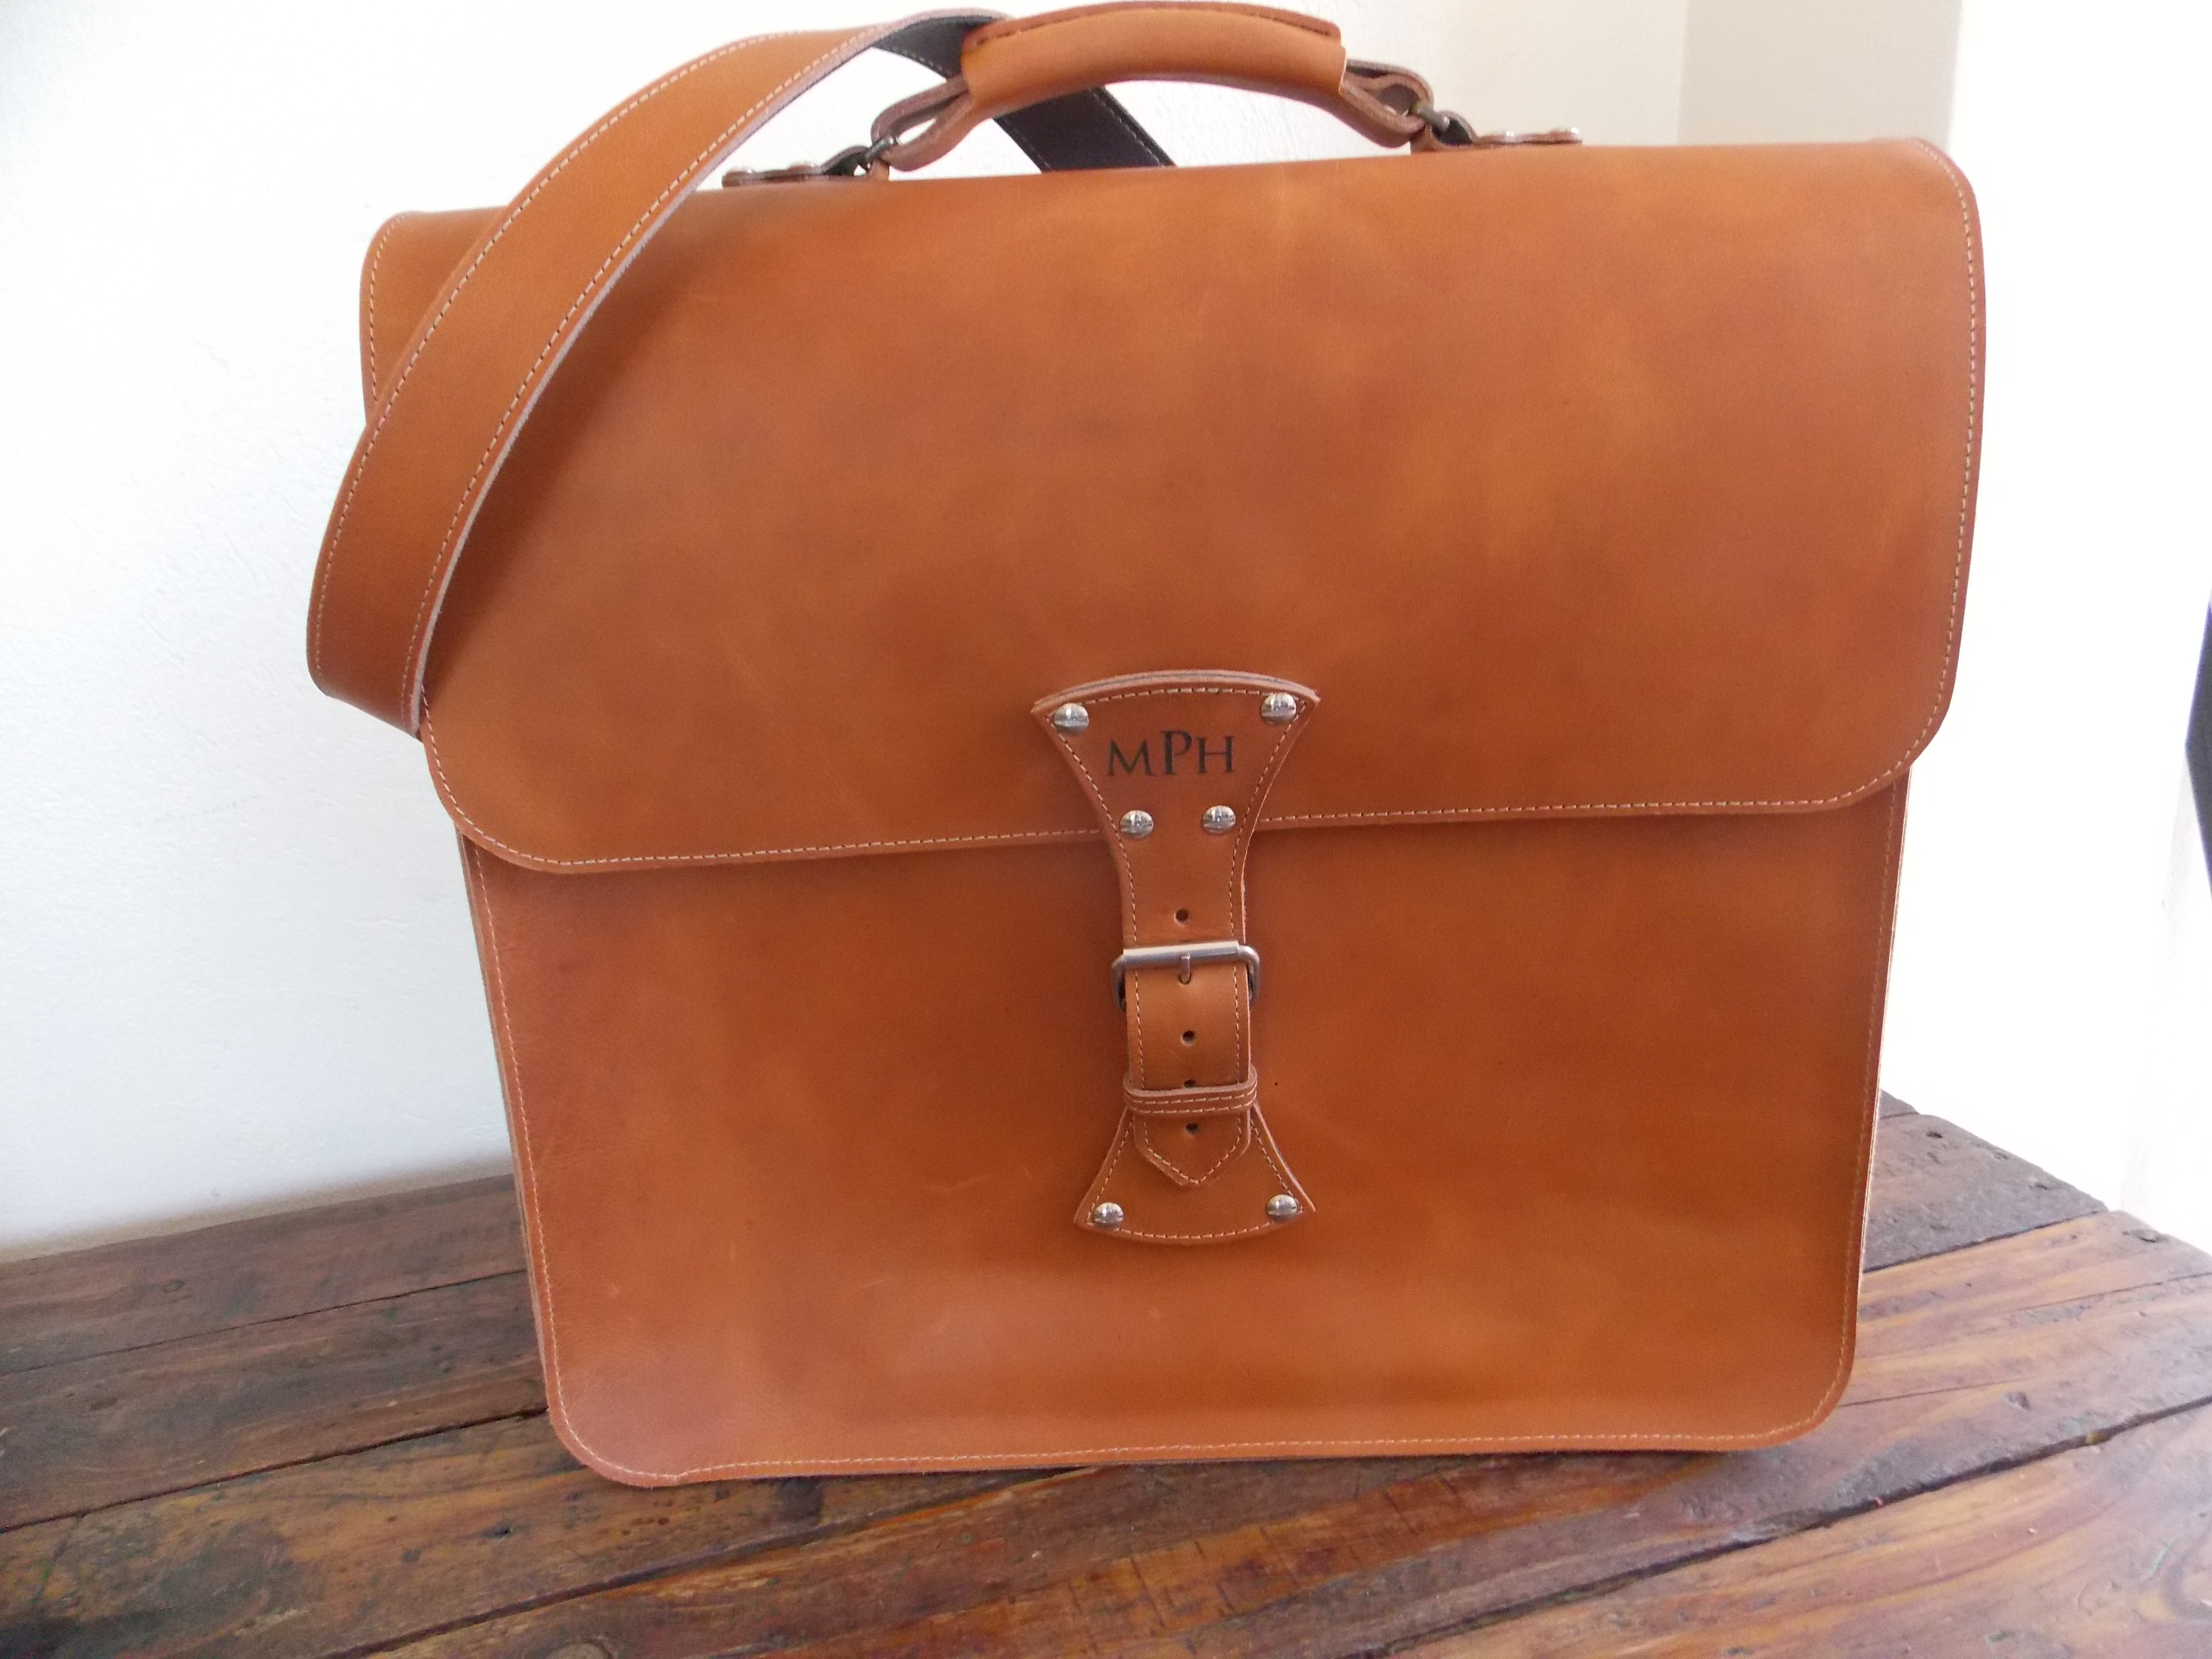 Calabash Leather Tan Bag